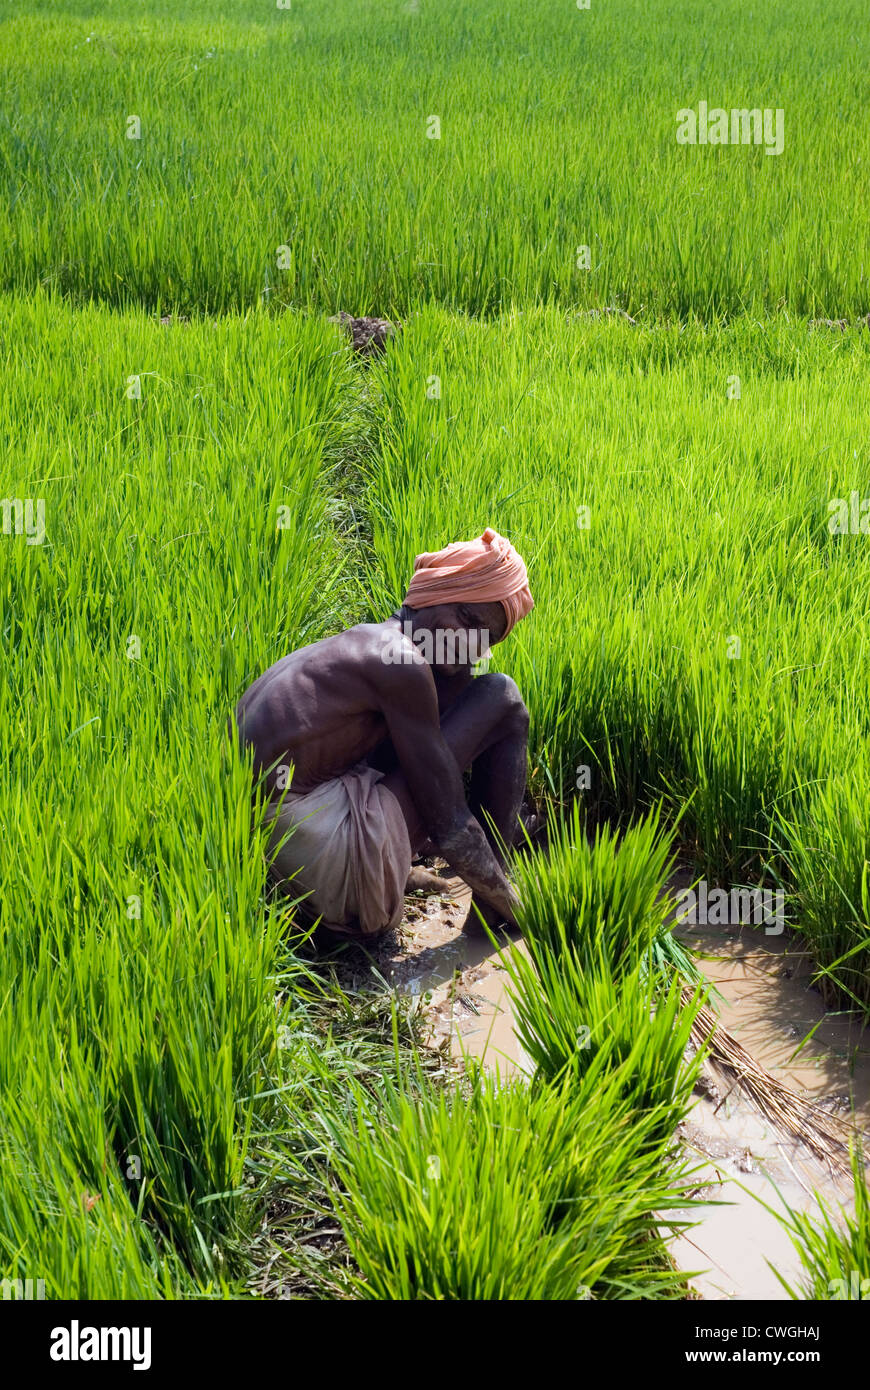 Indian farmer working in a rice paddy field in Udaygiri ...